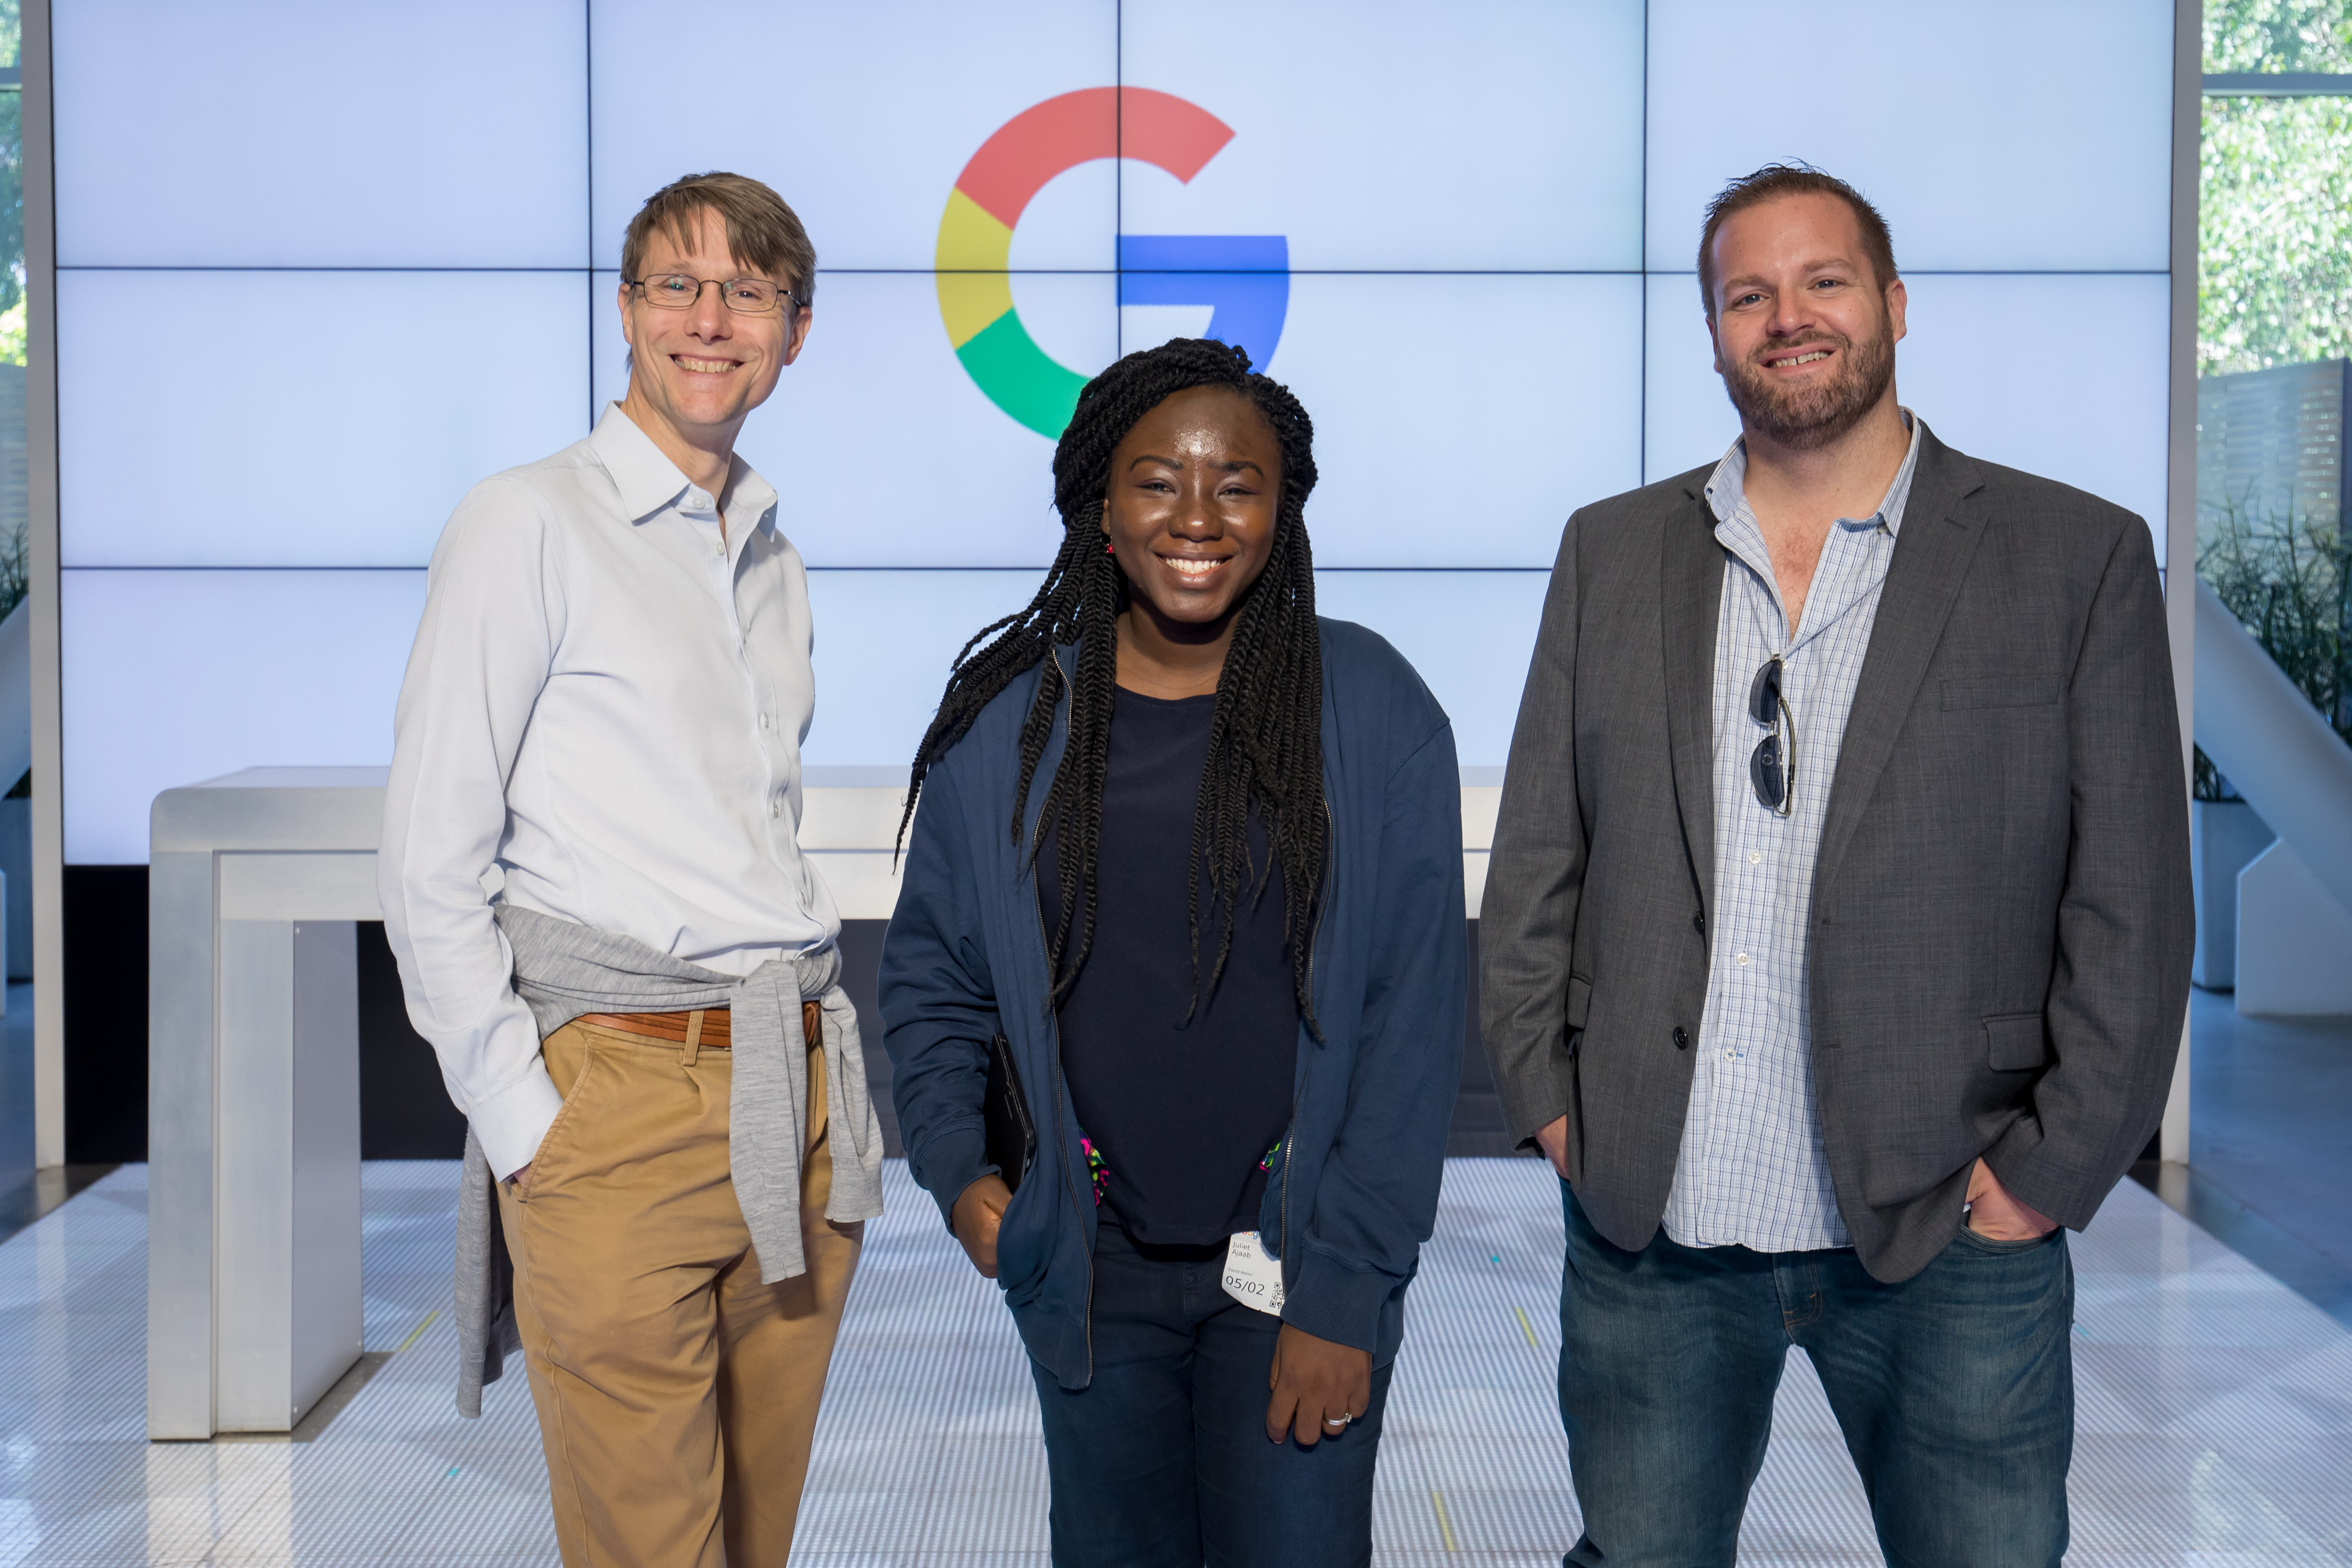 ICC Winners Small Business Video Competition Google Hq 1